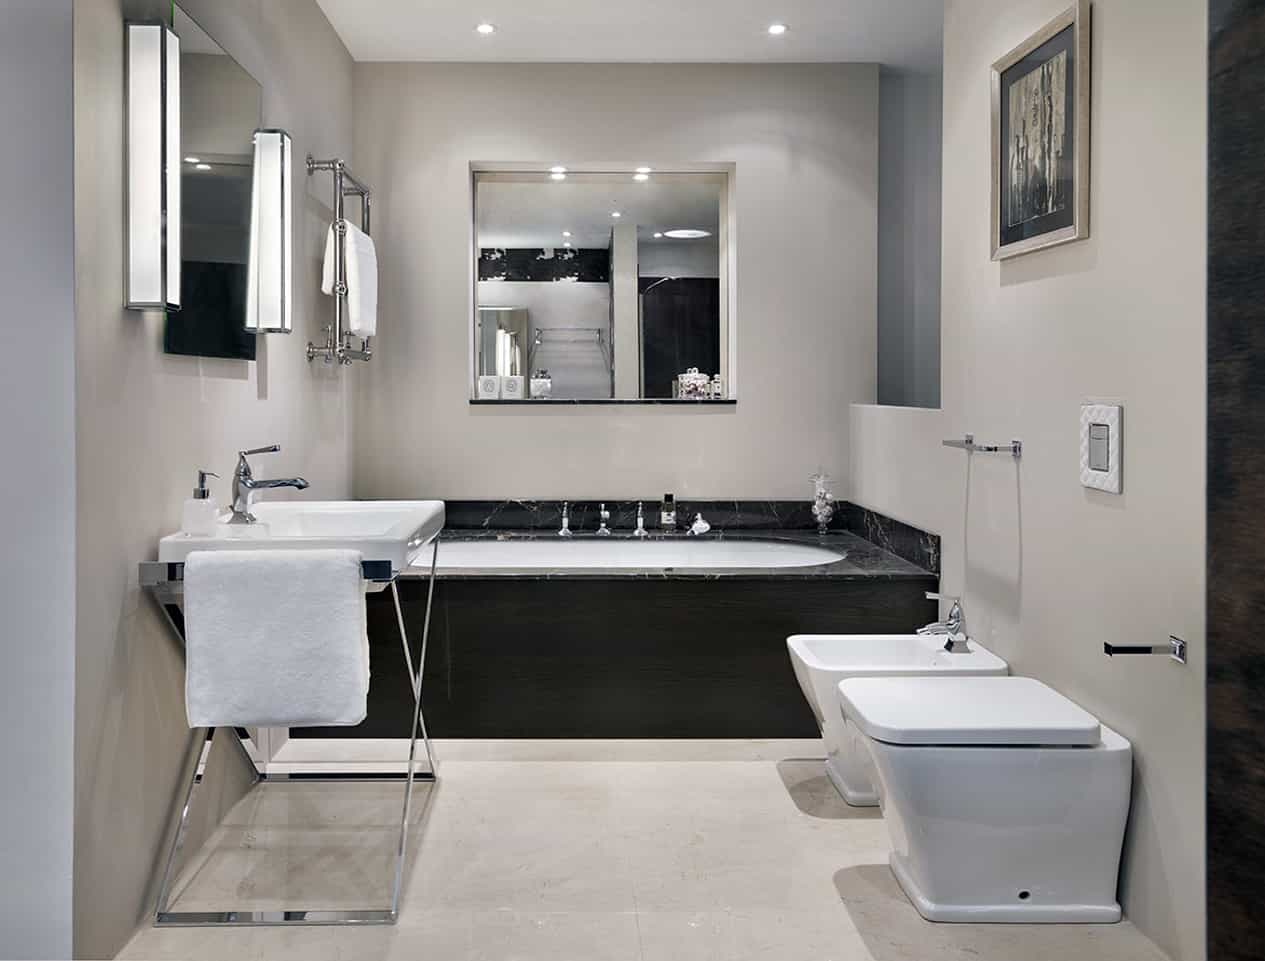 bathrooms london bathrooms london bathrooms north london